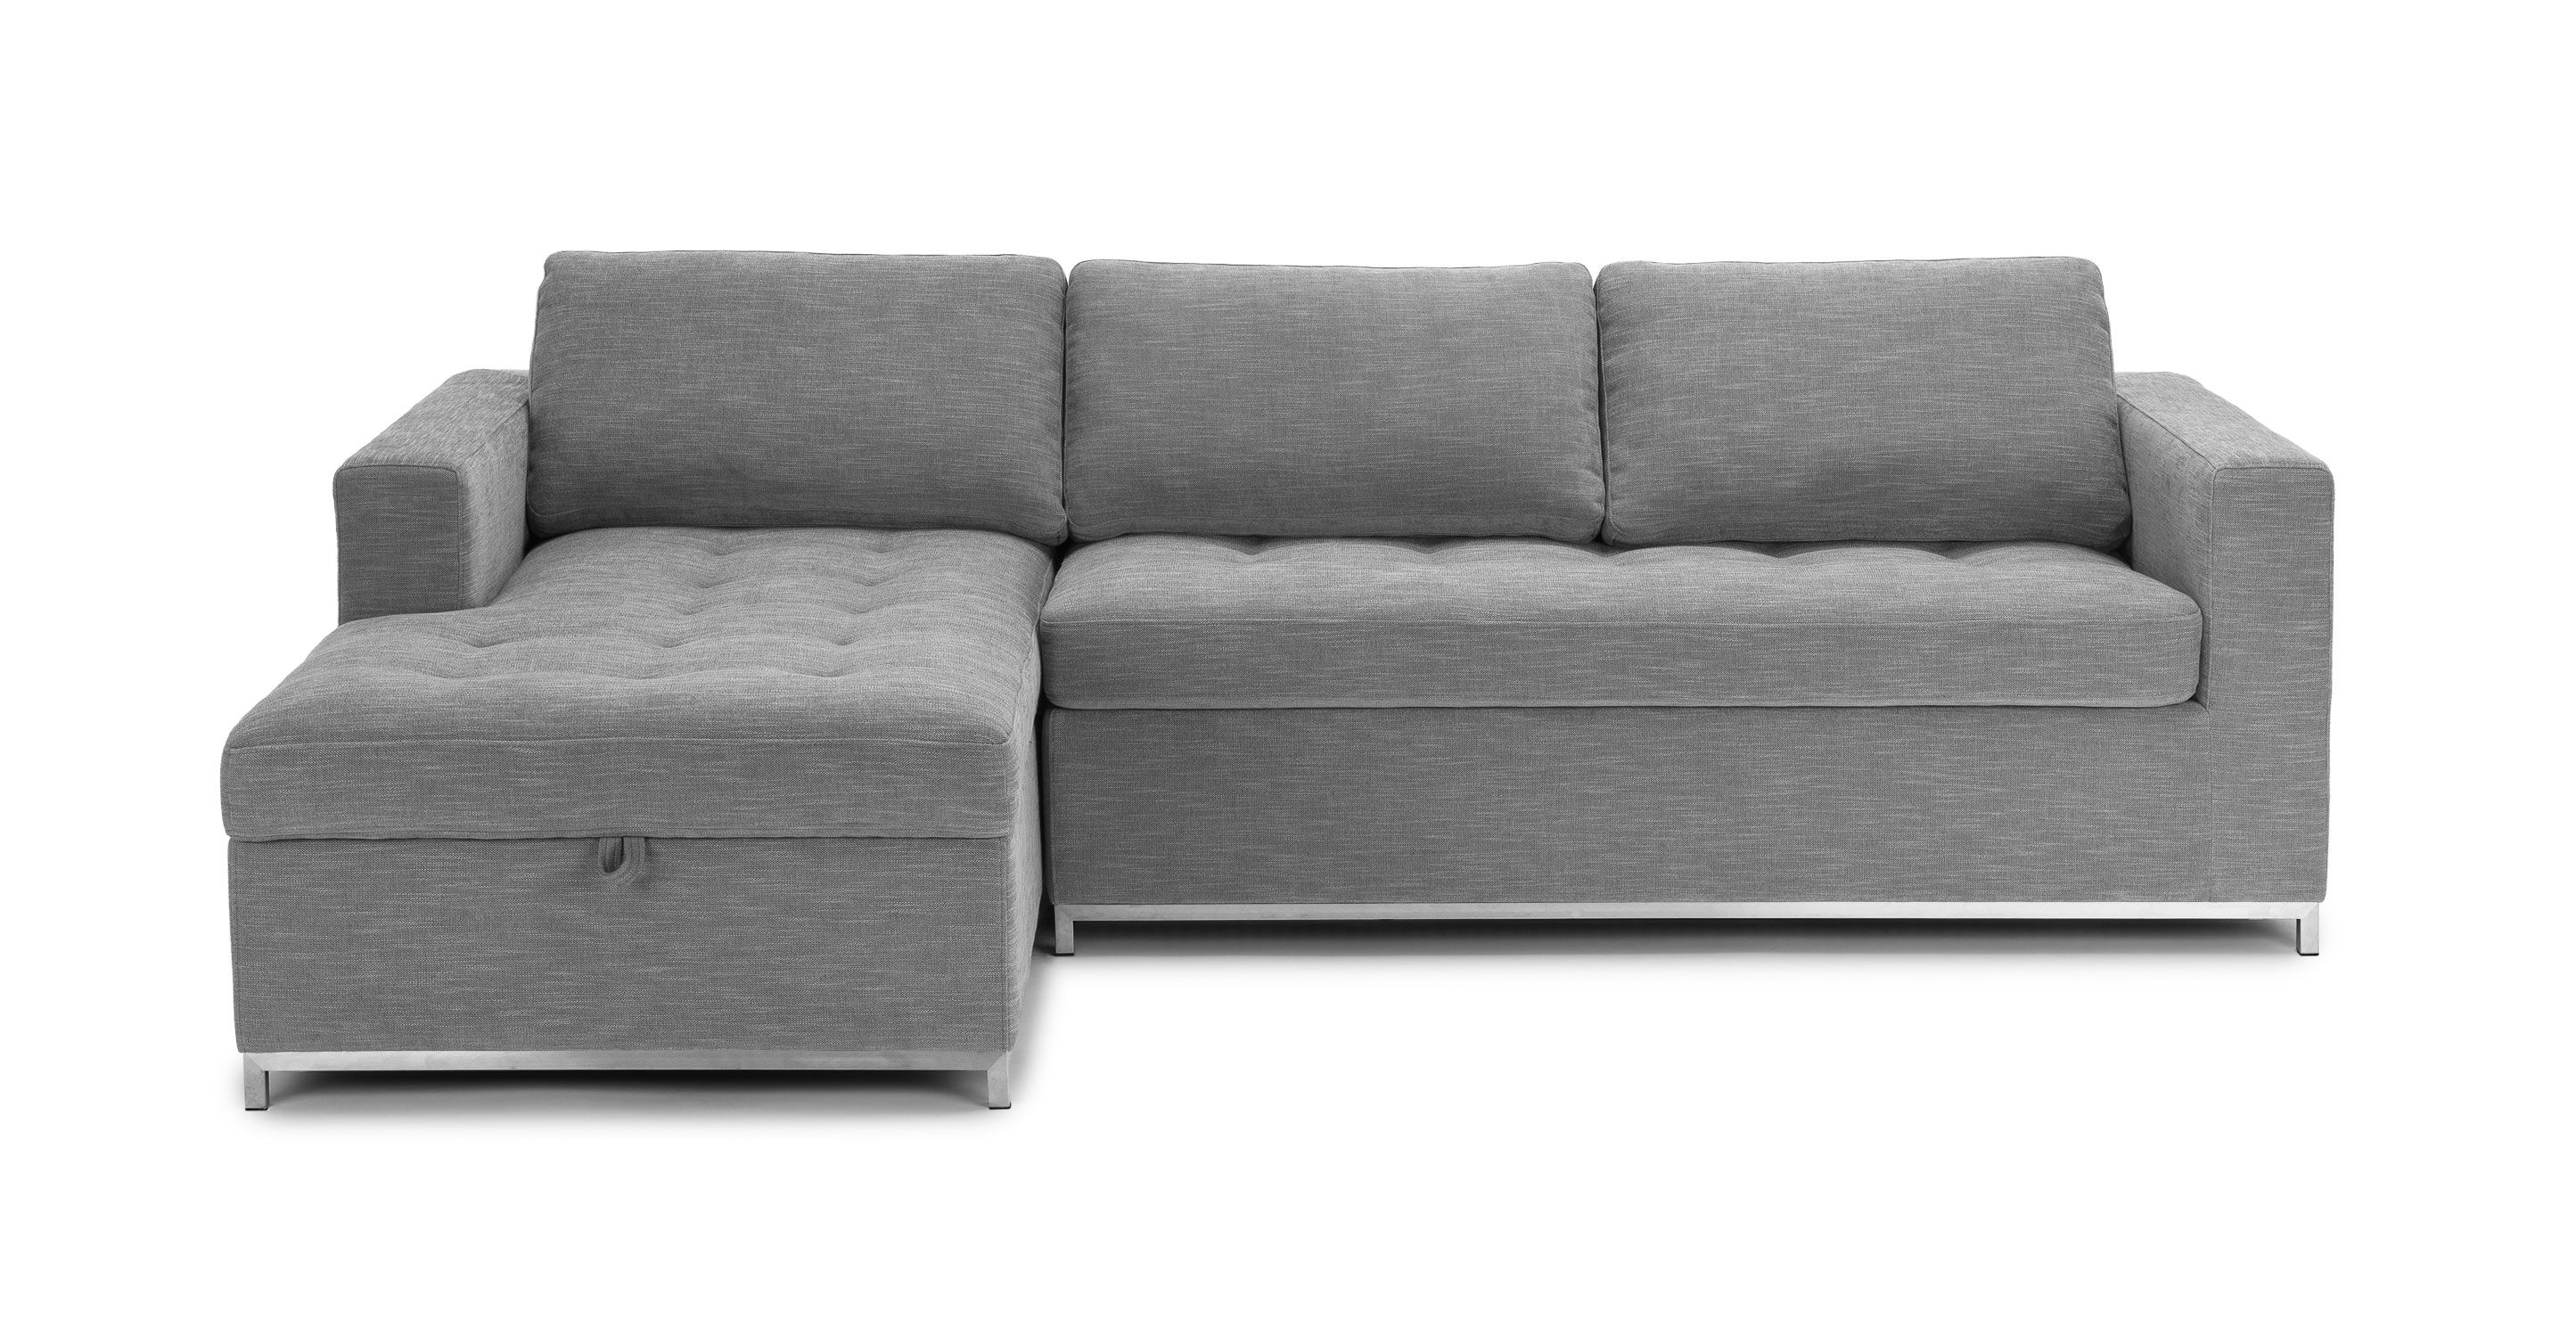 parker sofas durango sleepers furniture sleeper slate sectional queen grey